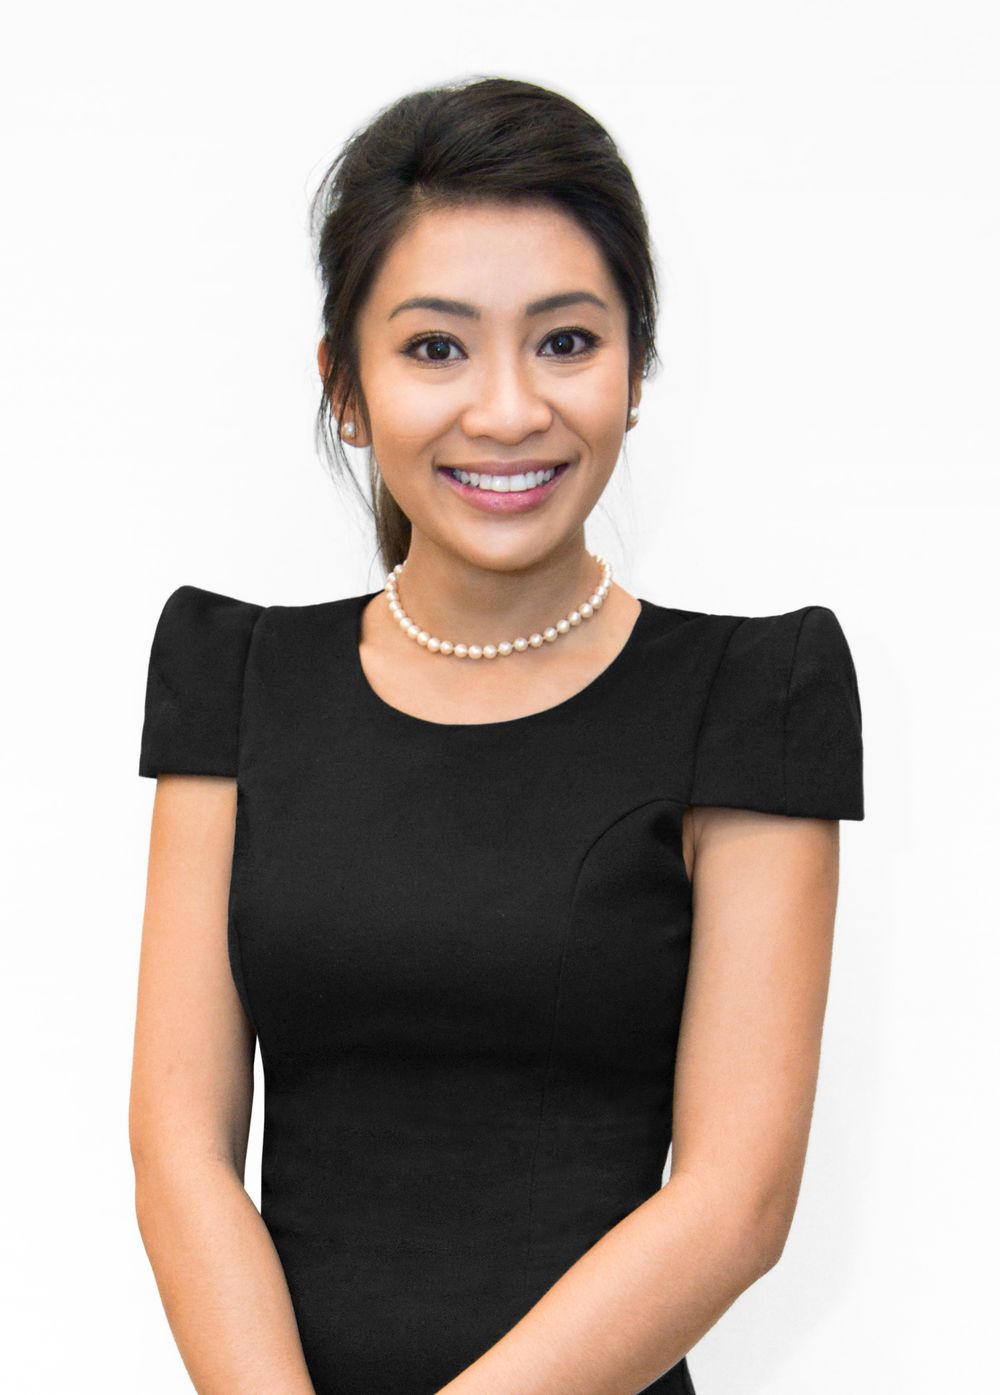 dr-sheila-nguyen-lsfa-london-school-of-facial-aesthetics